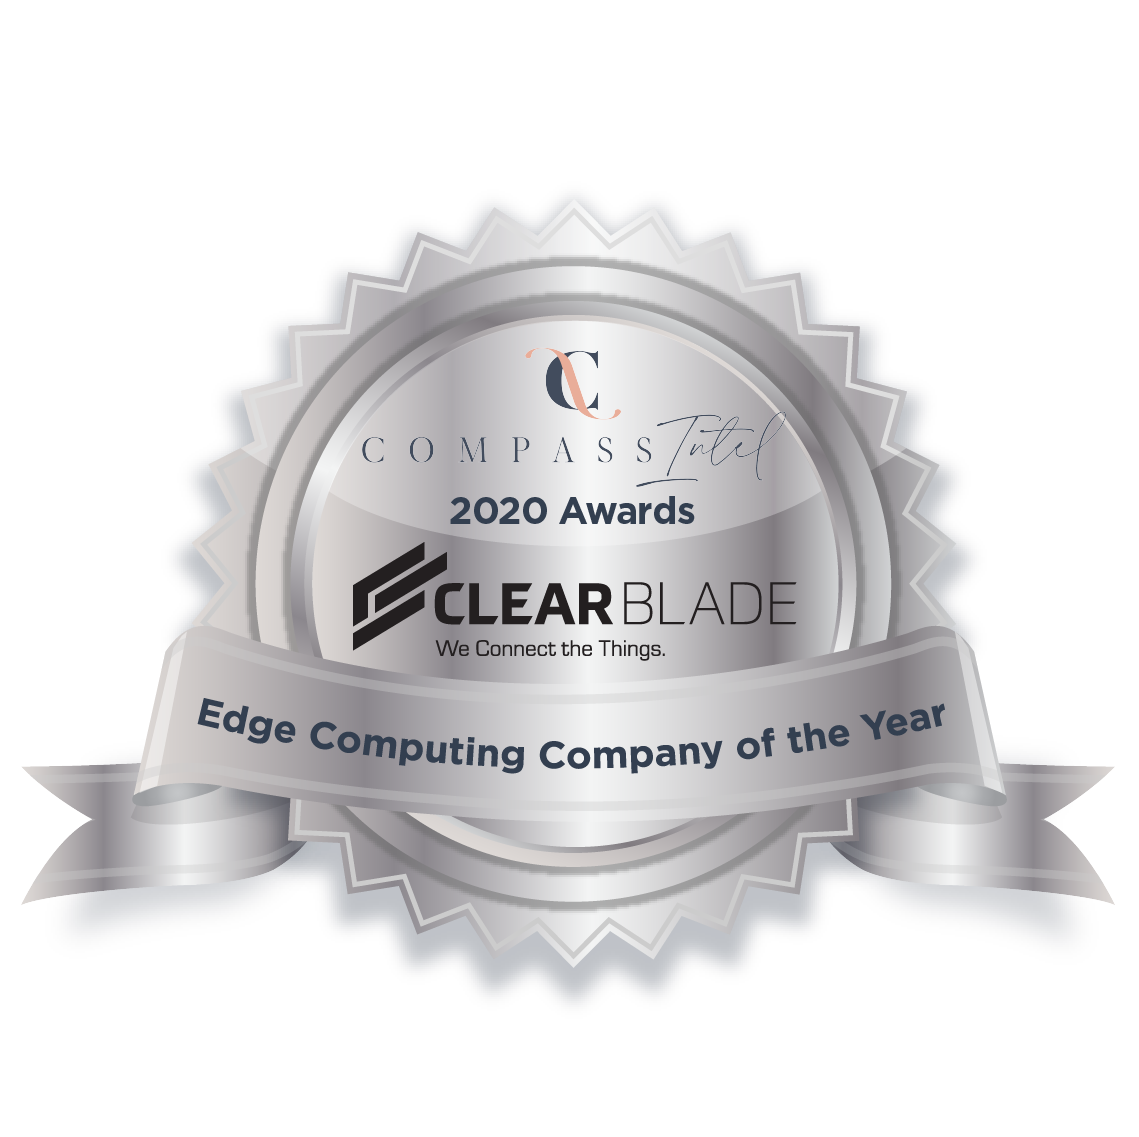 ClearBlade Honored with the 2020 Edge Computing Company of the Year Award by Compass Intelligence